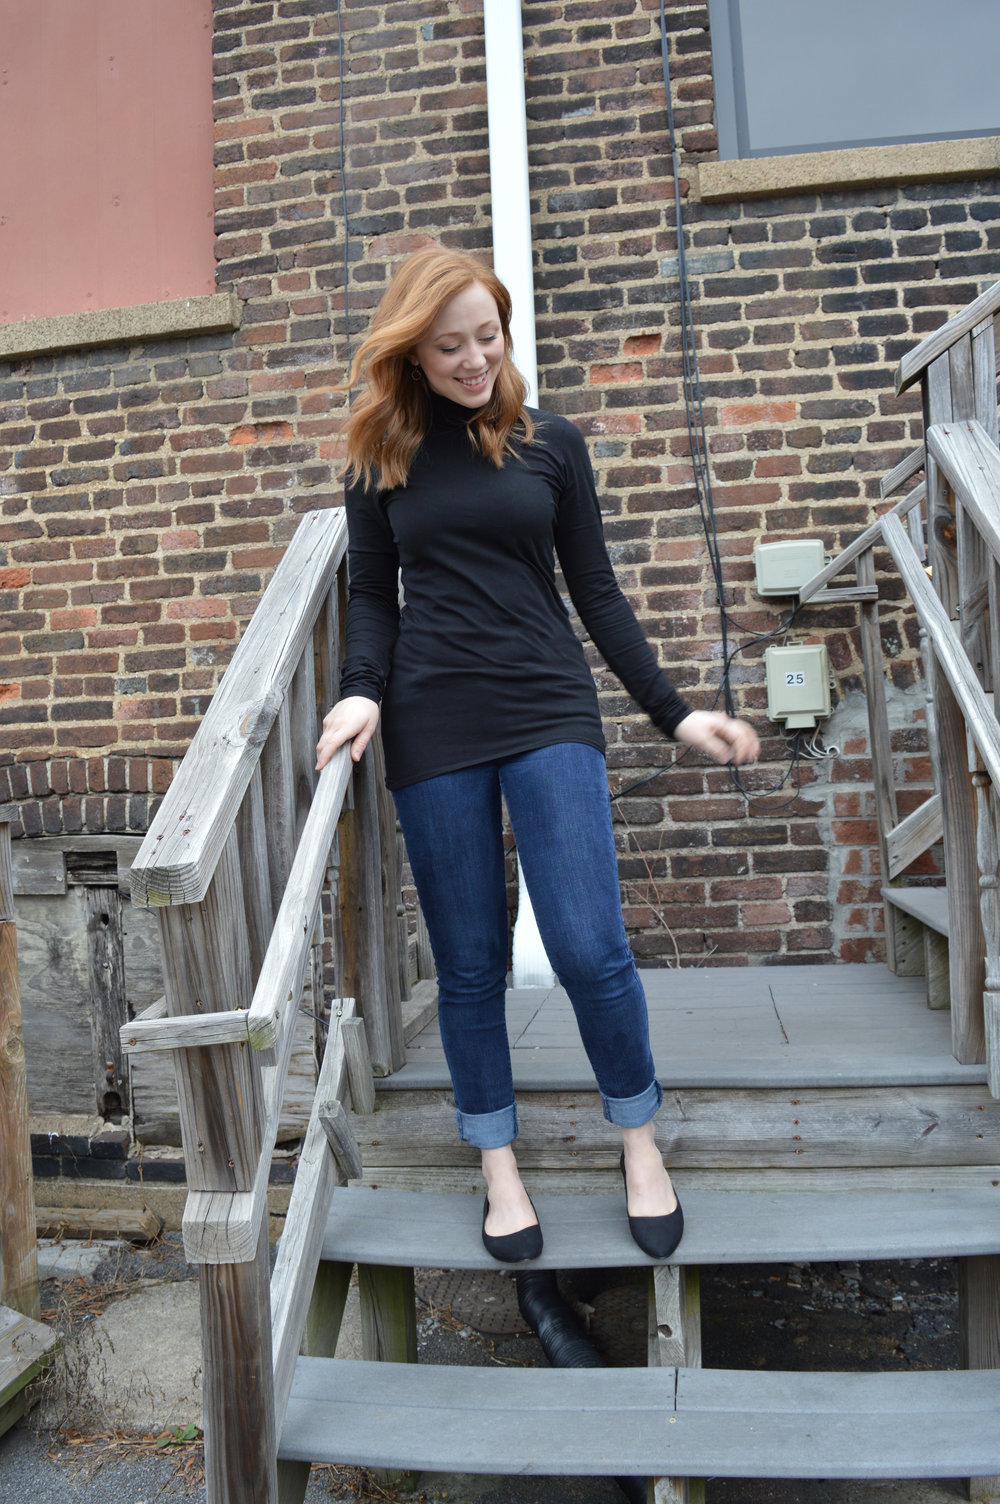 On the square in Murfreesboro - See my review on Garmentory for outfit details